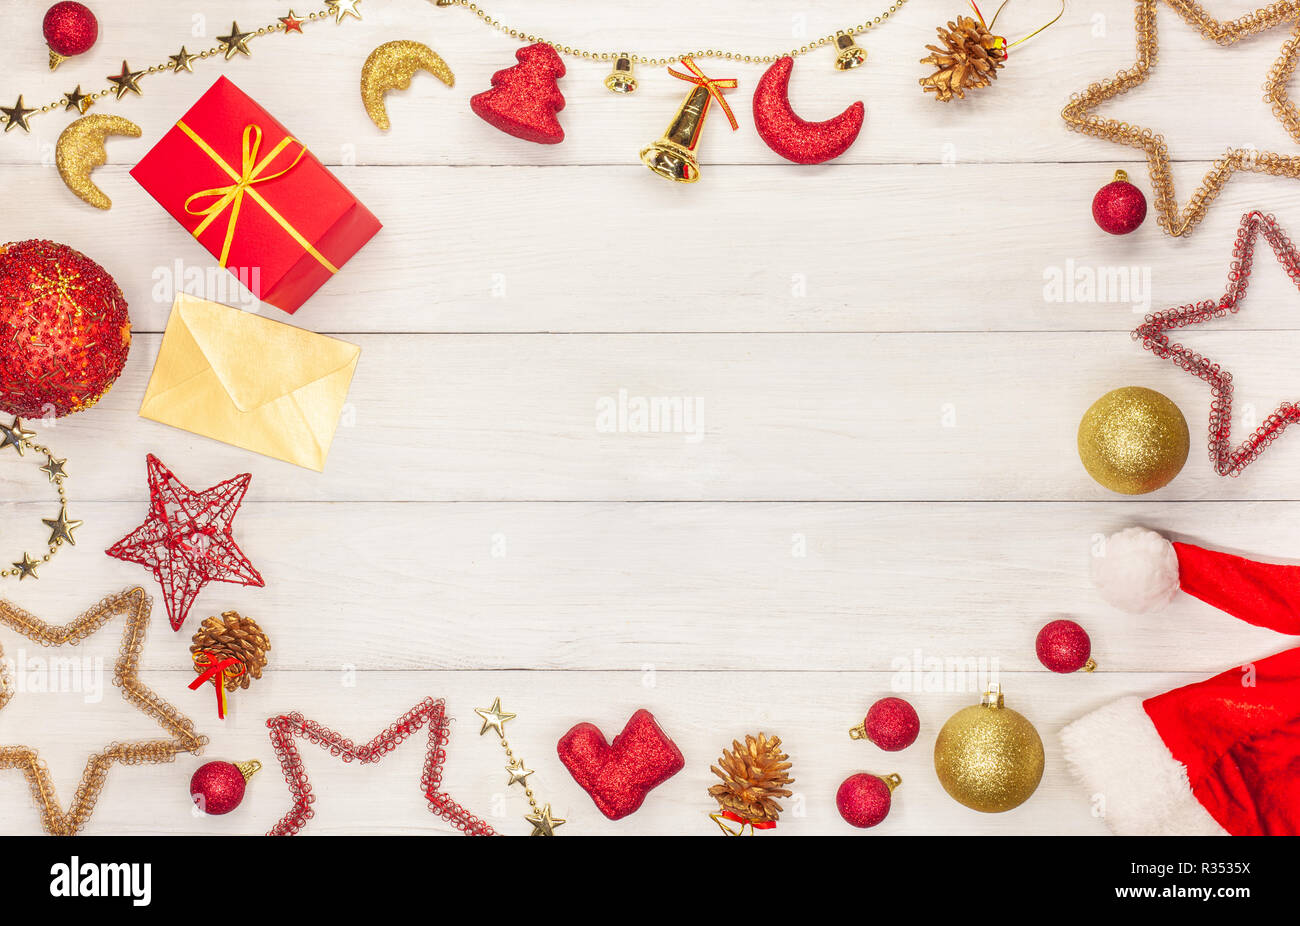 Christmas star toys, balls, bells, Christmas bells, asterisks, a box with a gift and a gold envelope on a white wooden table - Stock Image